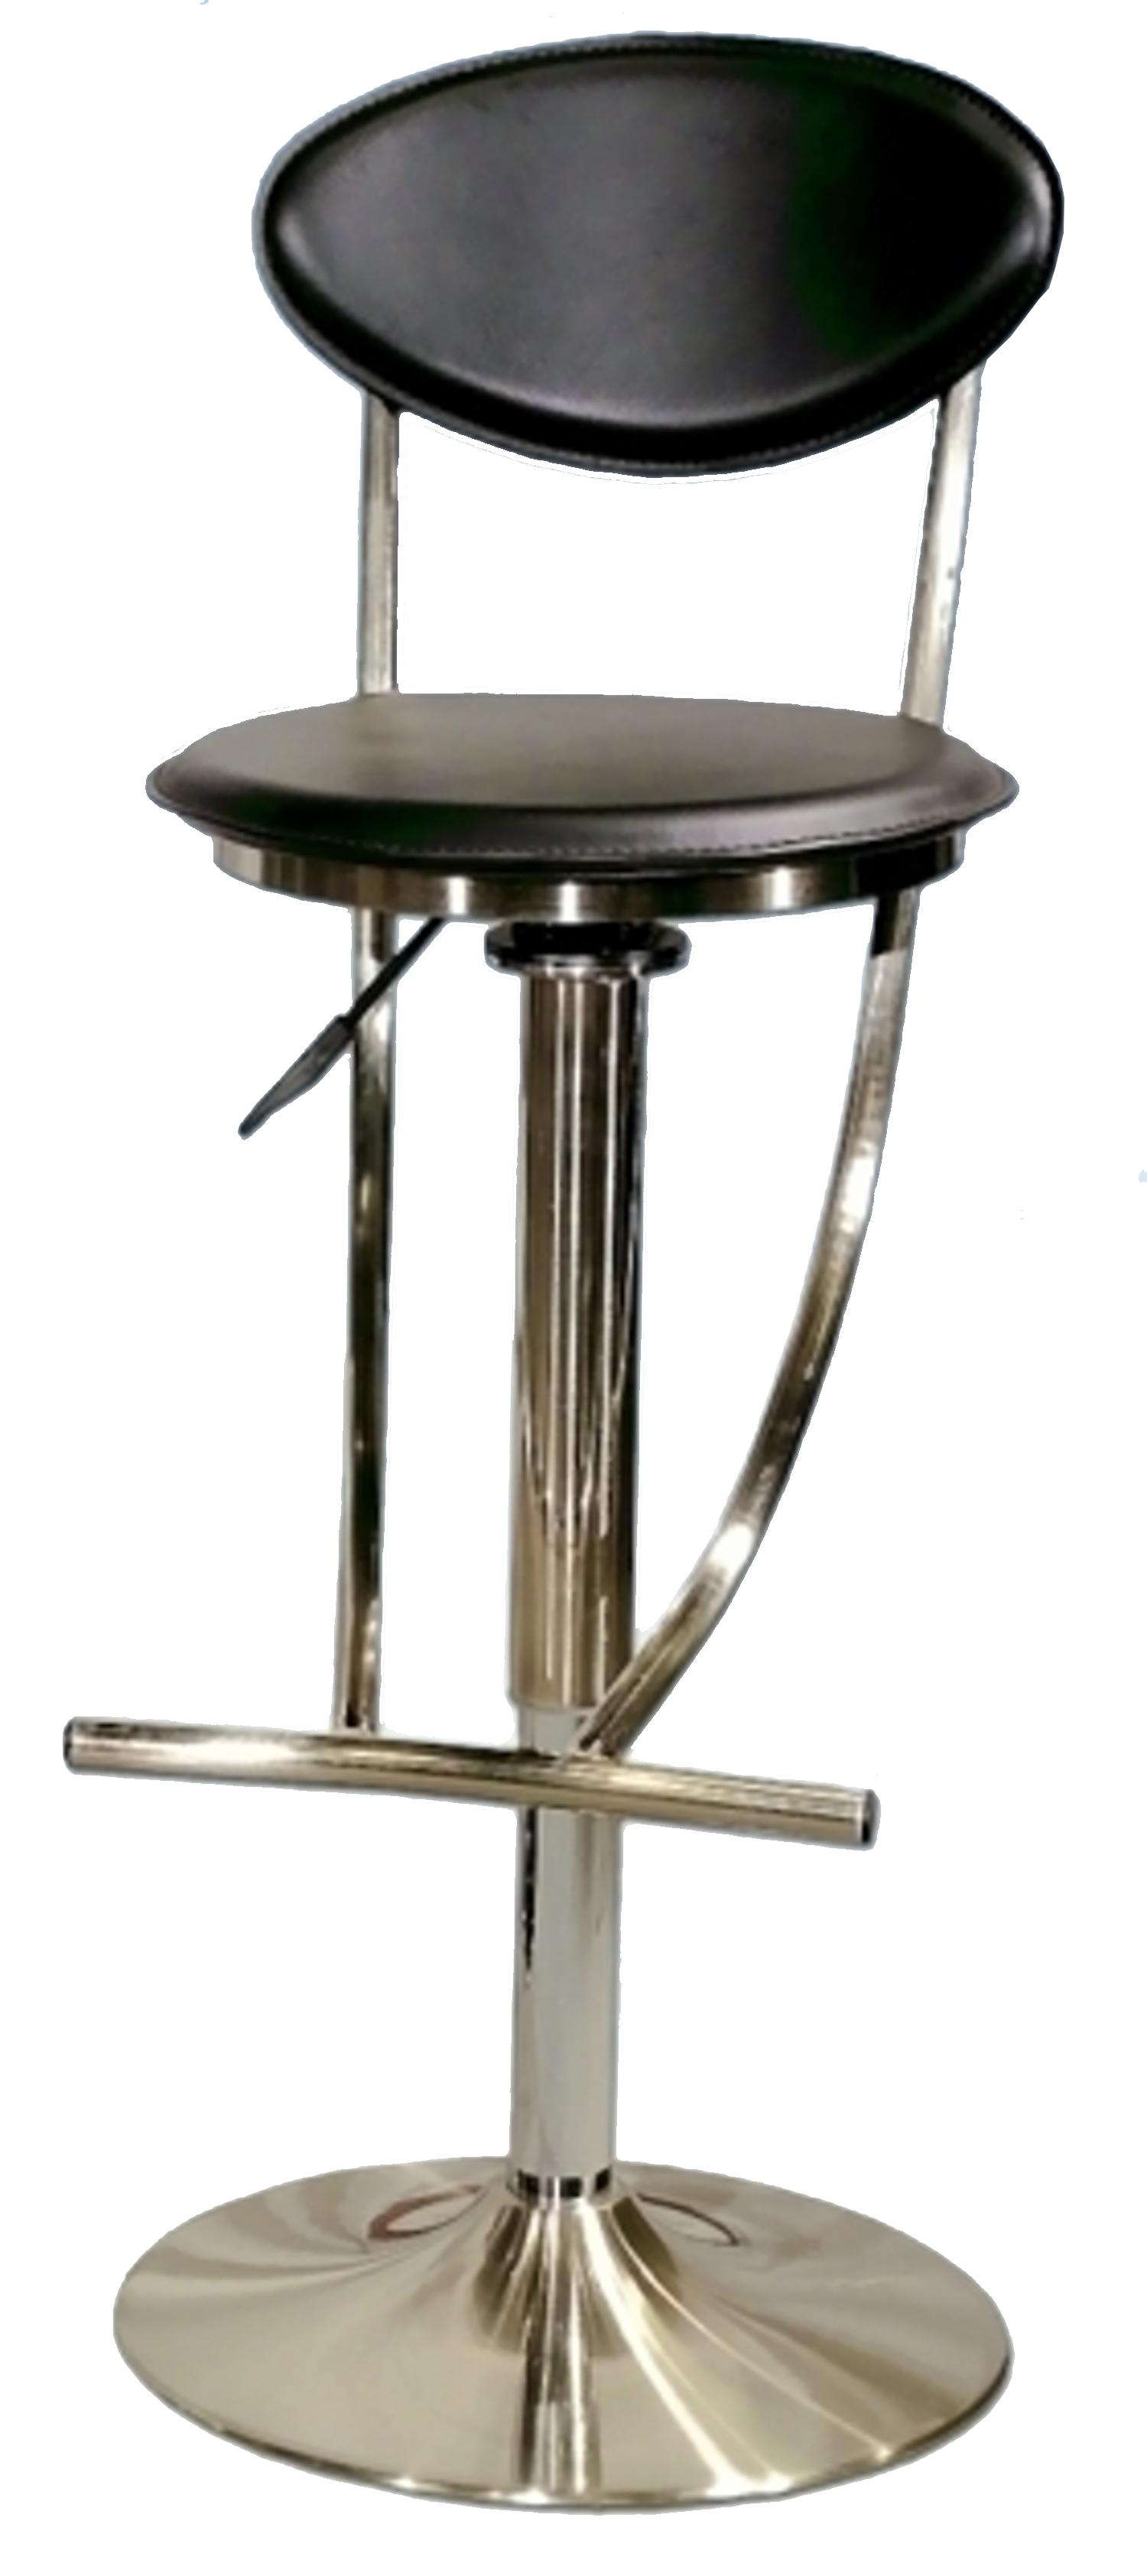 6000 Series Adjustable Height Swivel Stool by Chintaly Imports at Nassau Furniture and Mattress